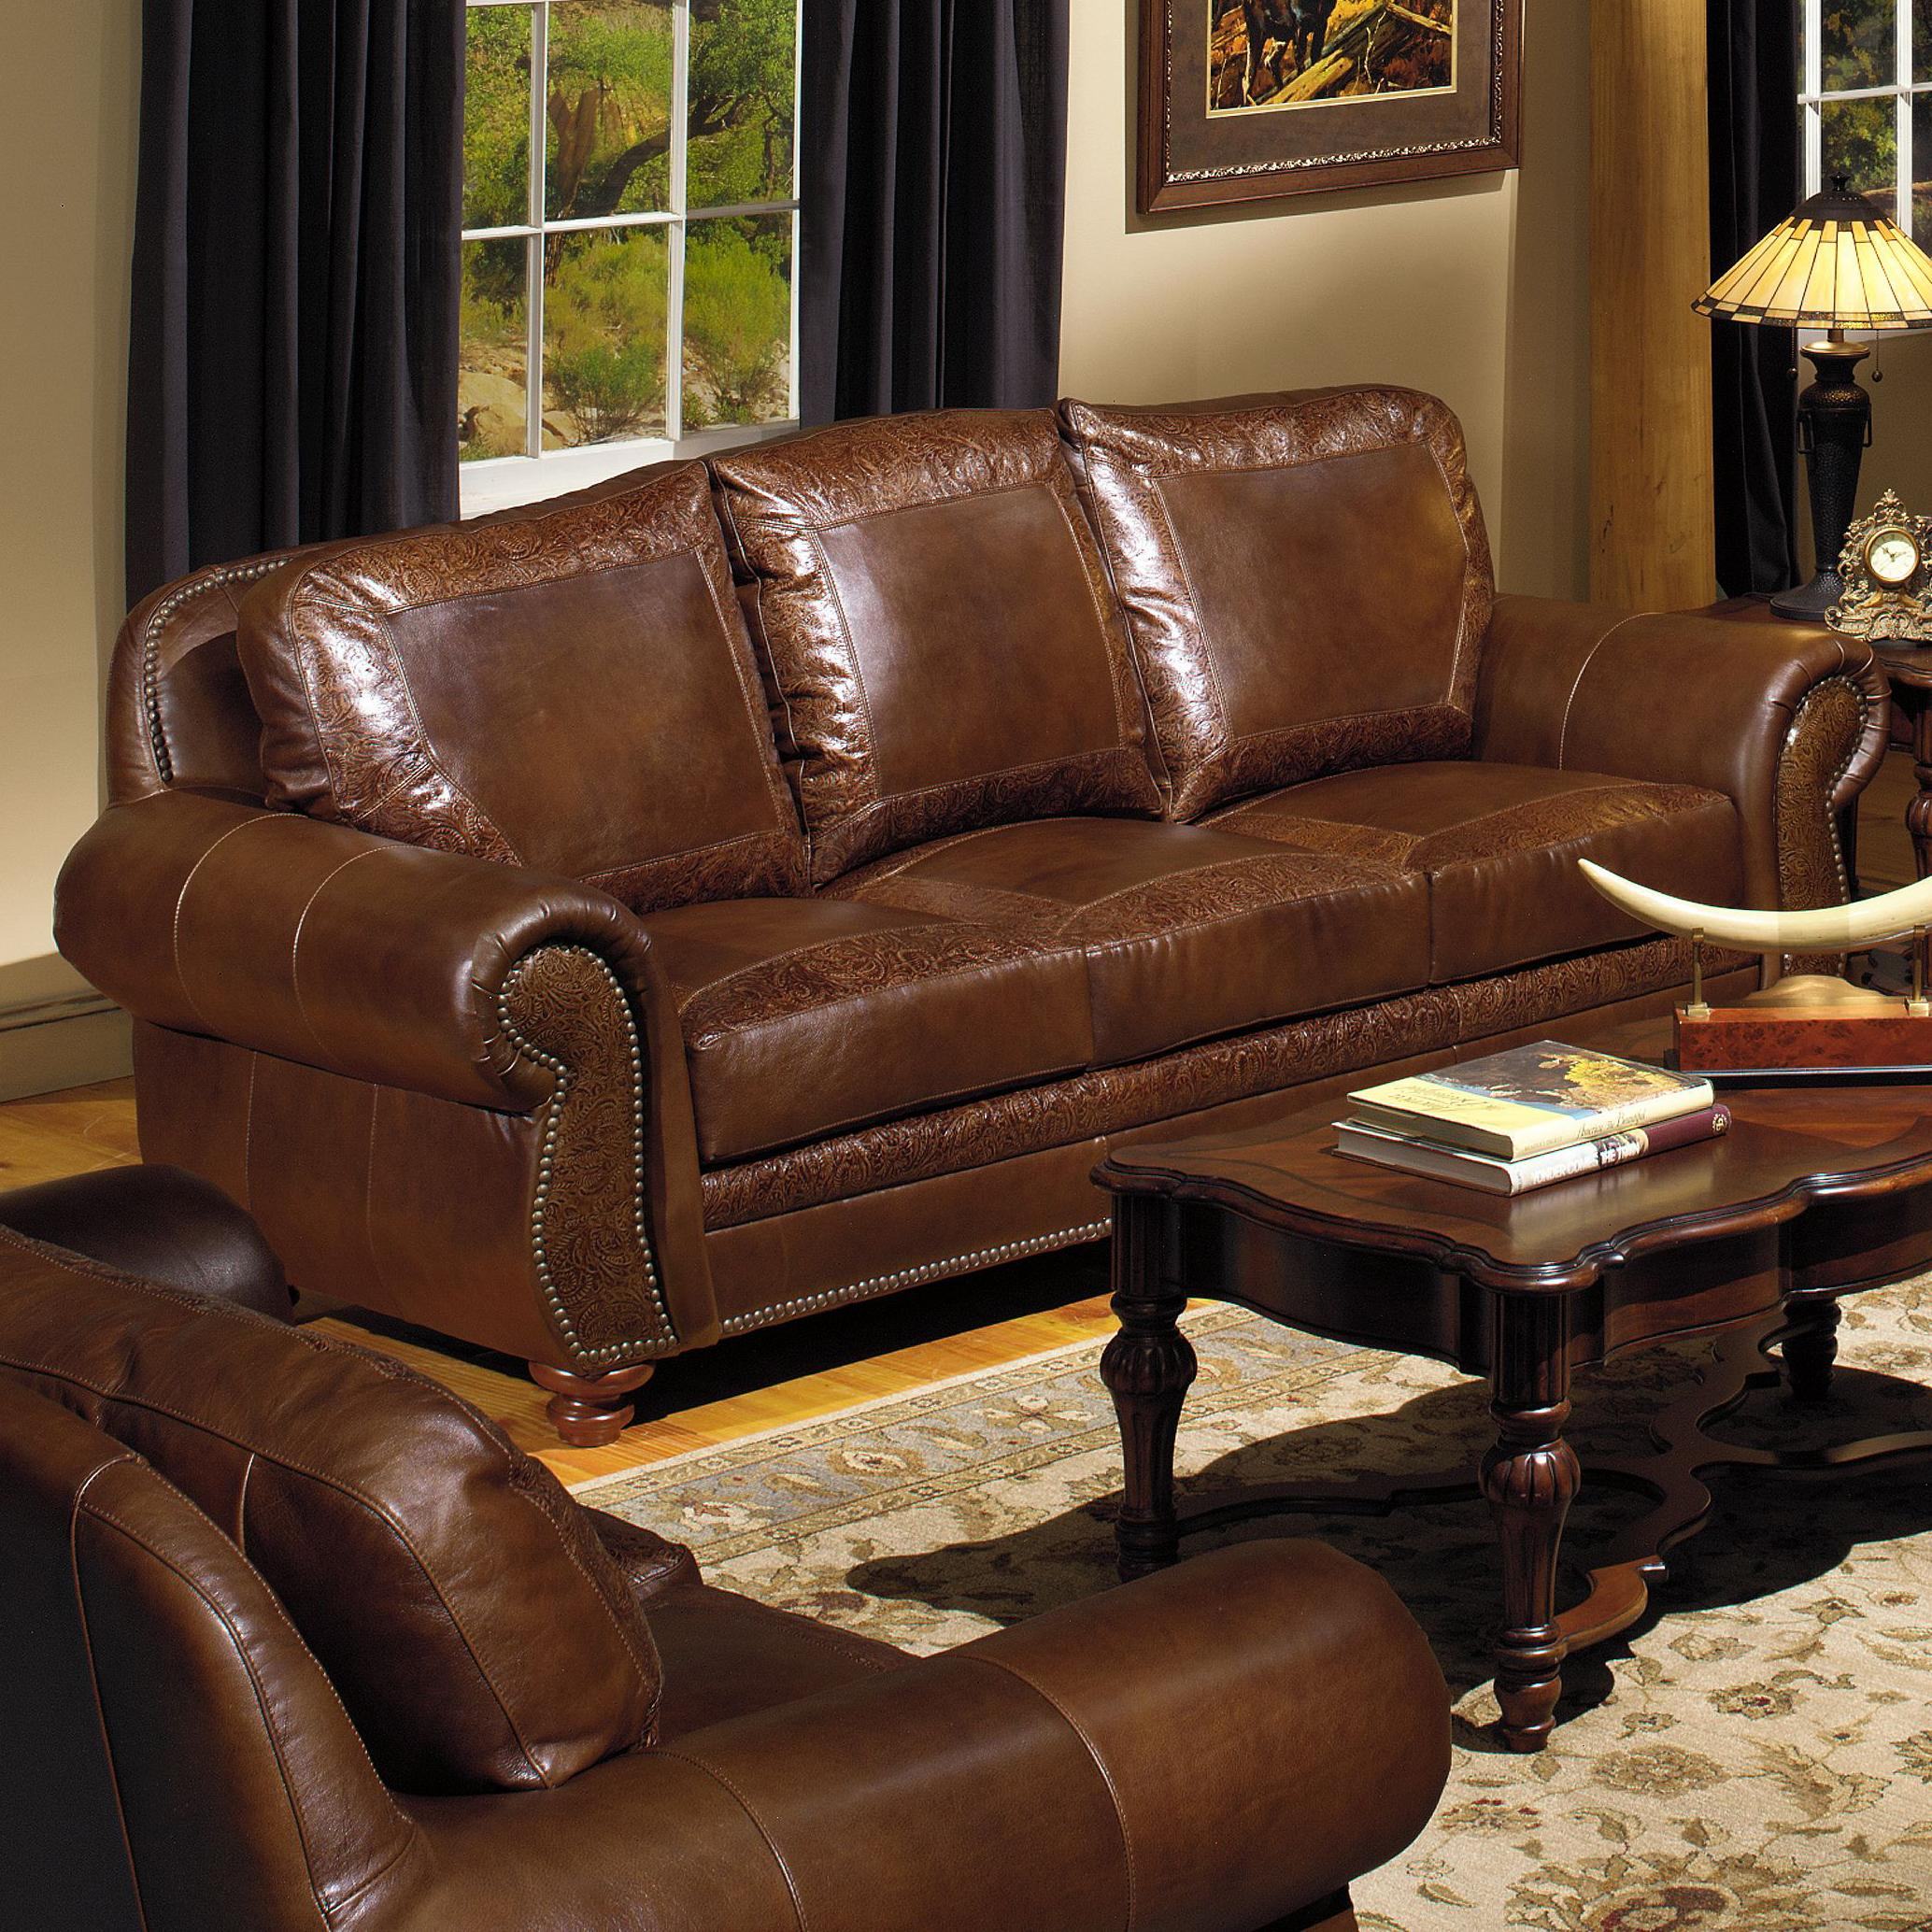 USA Premium Leather Traditional Leather Sofa With Nailhead - Leather sofas tampa